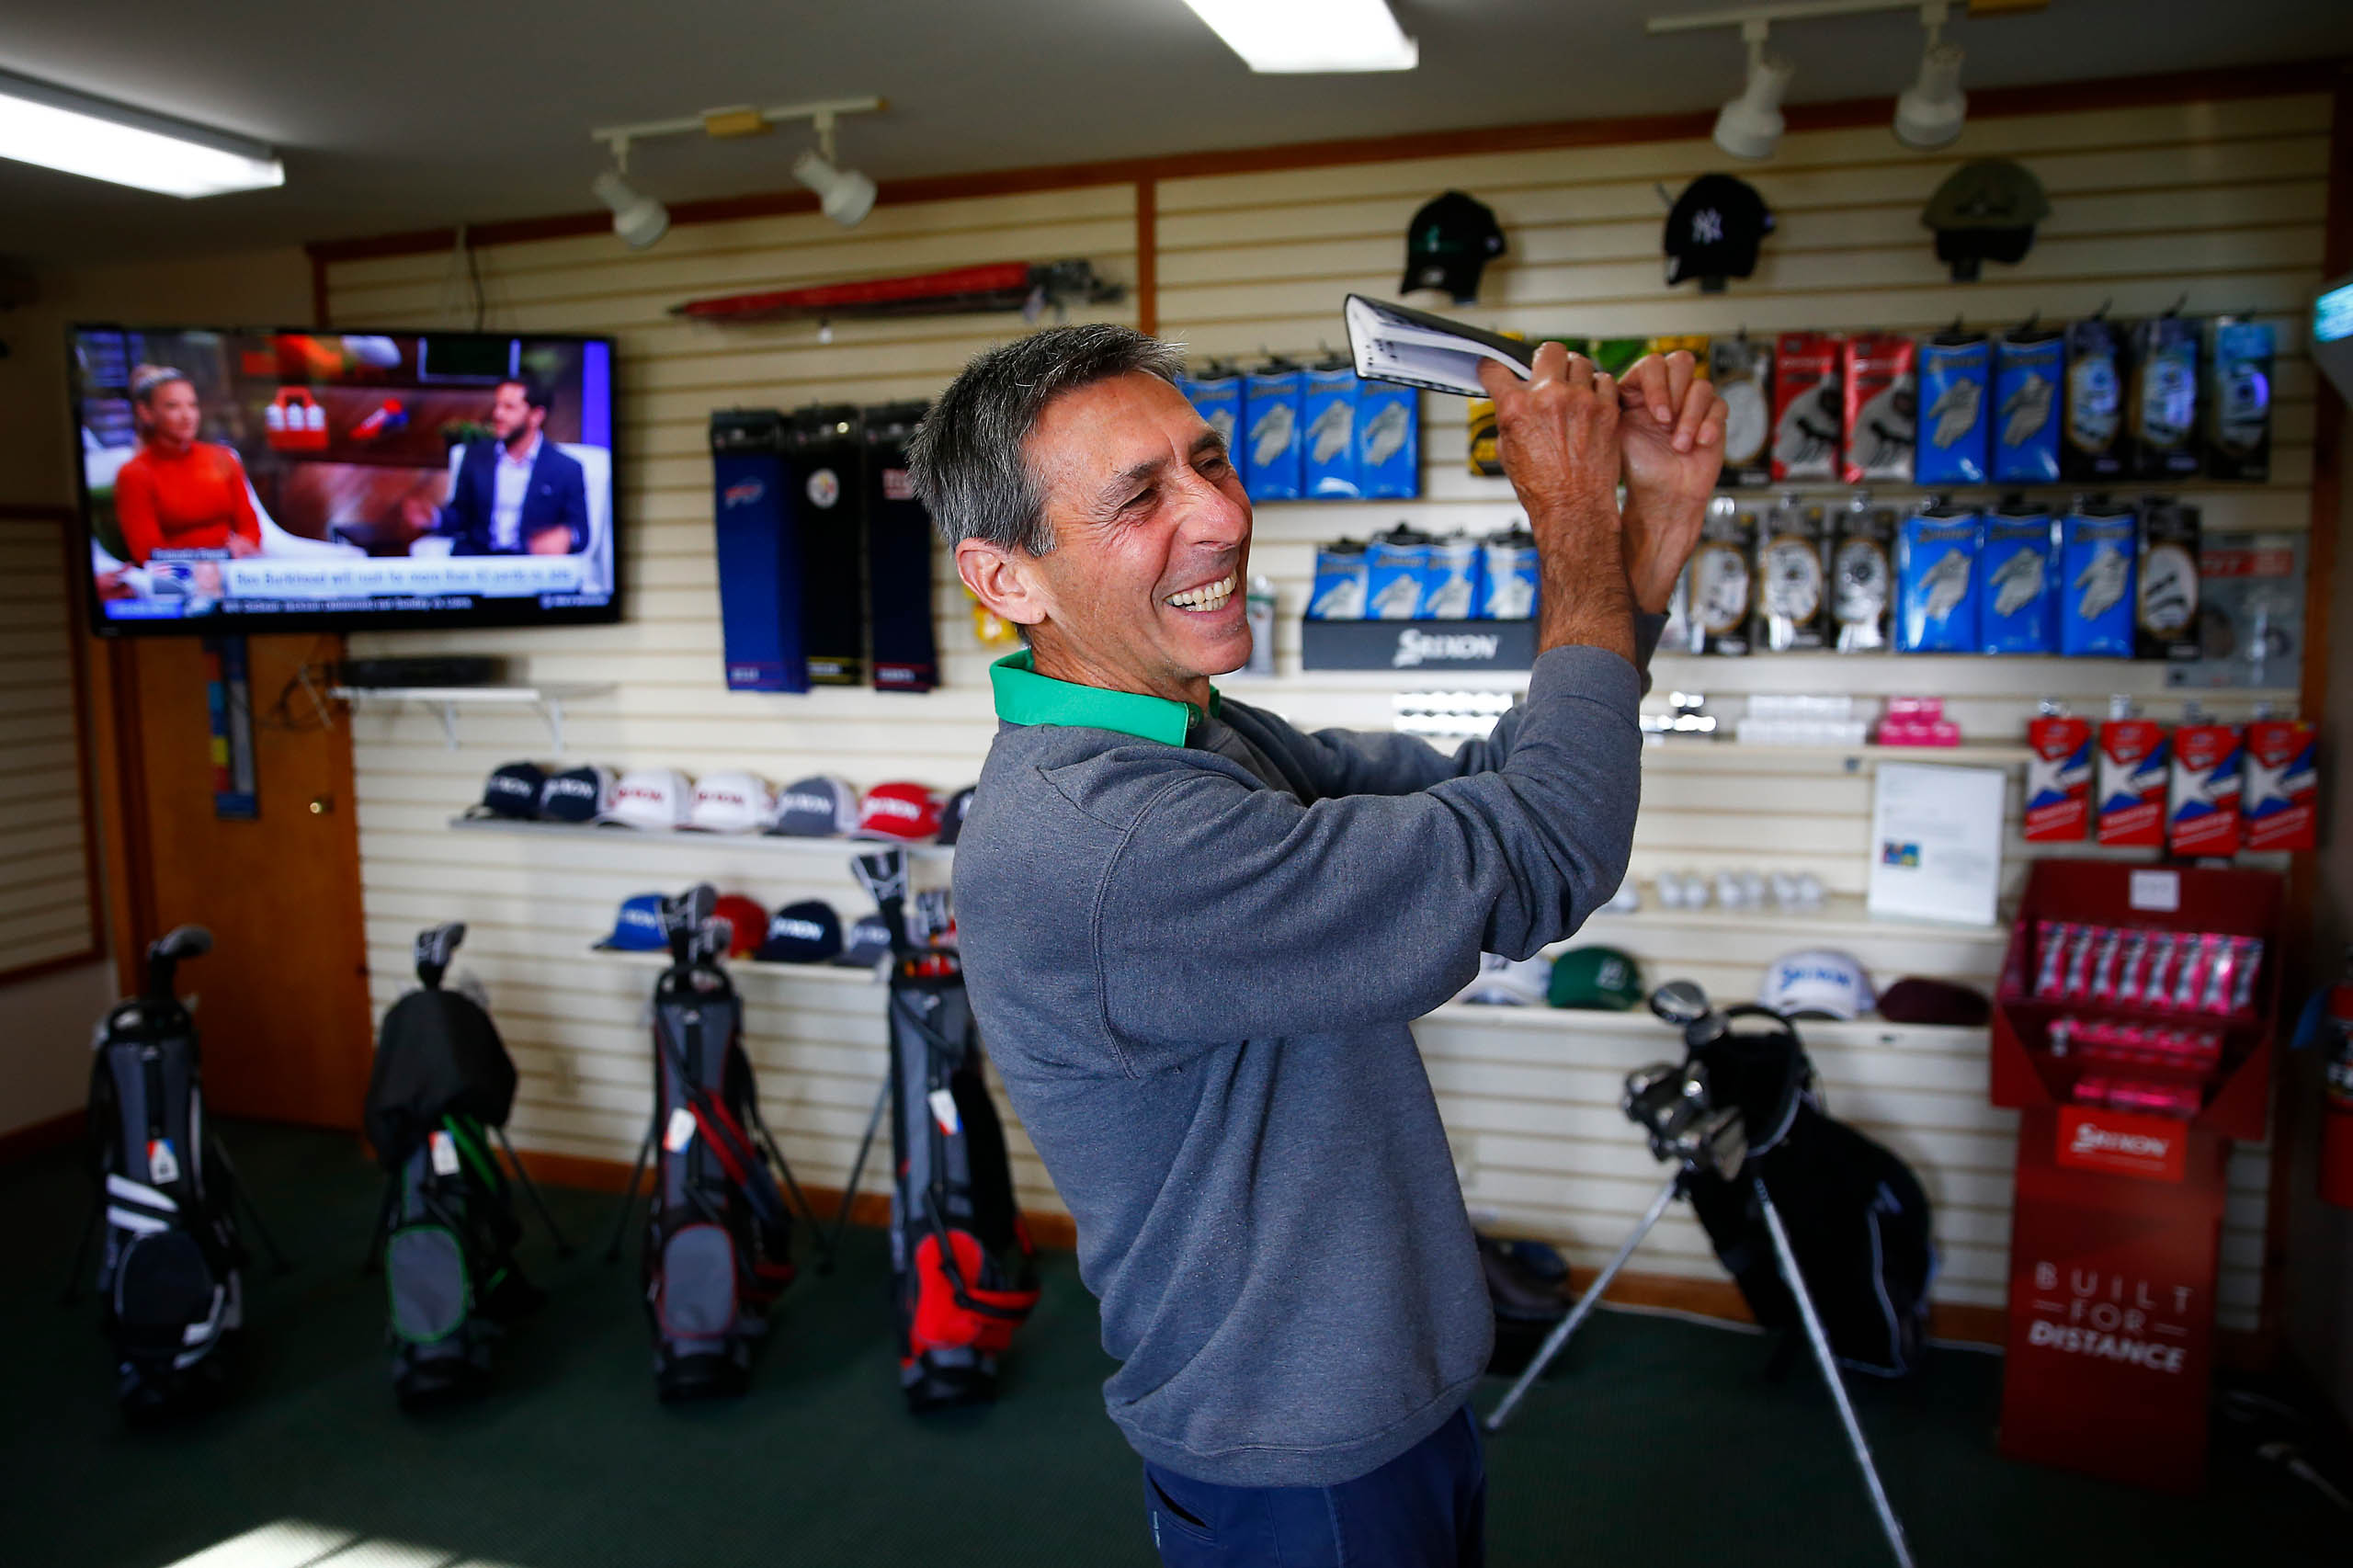 Jimmy Dref, golf pro at the Bob-O-Link golf course, pretends to swing while in conversation in the clubhouse. Photo by Jared Wickerham/Golfers Journal)